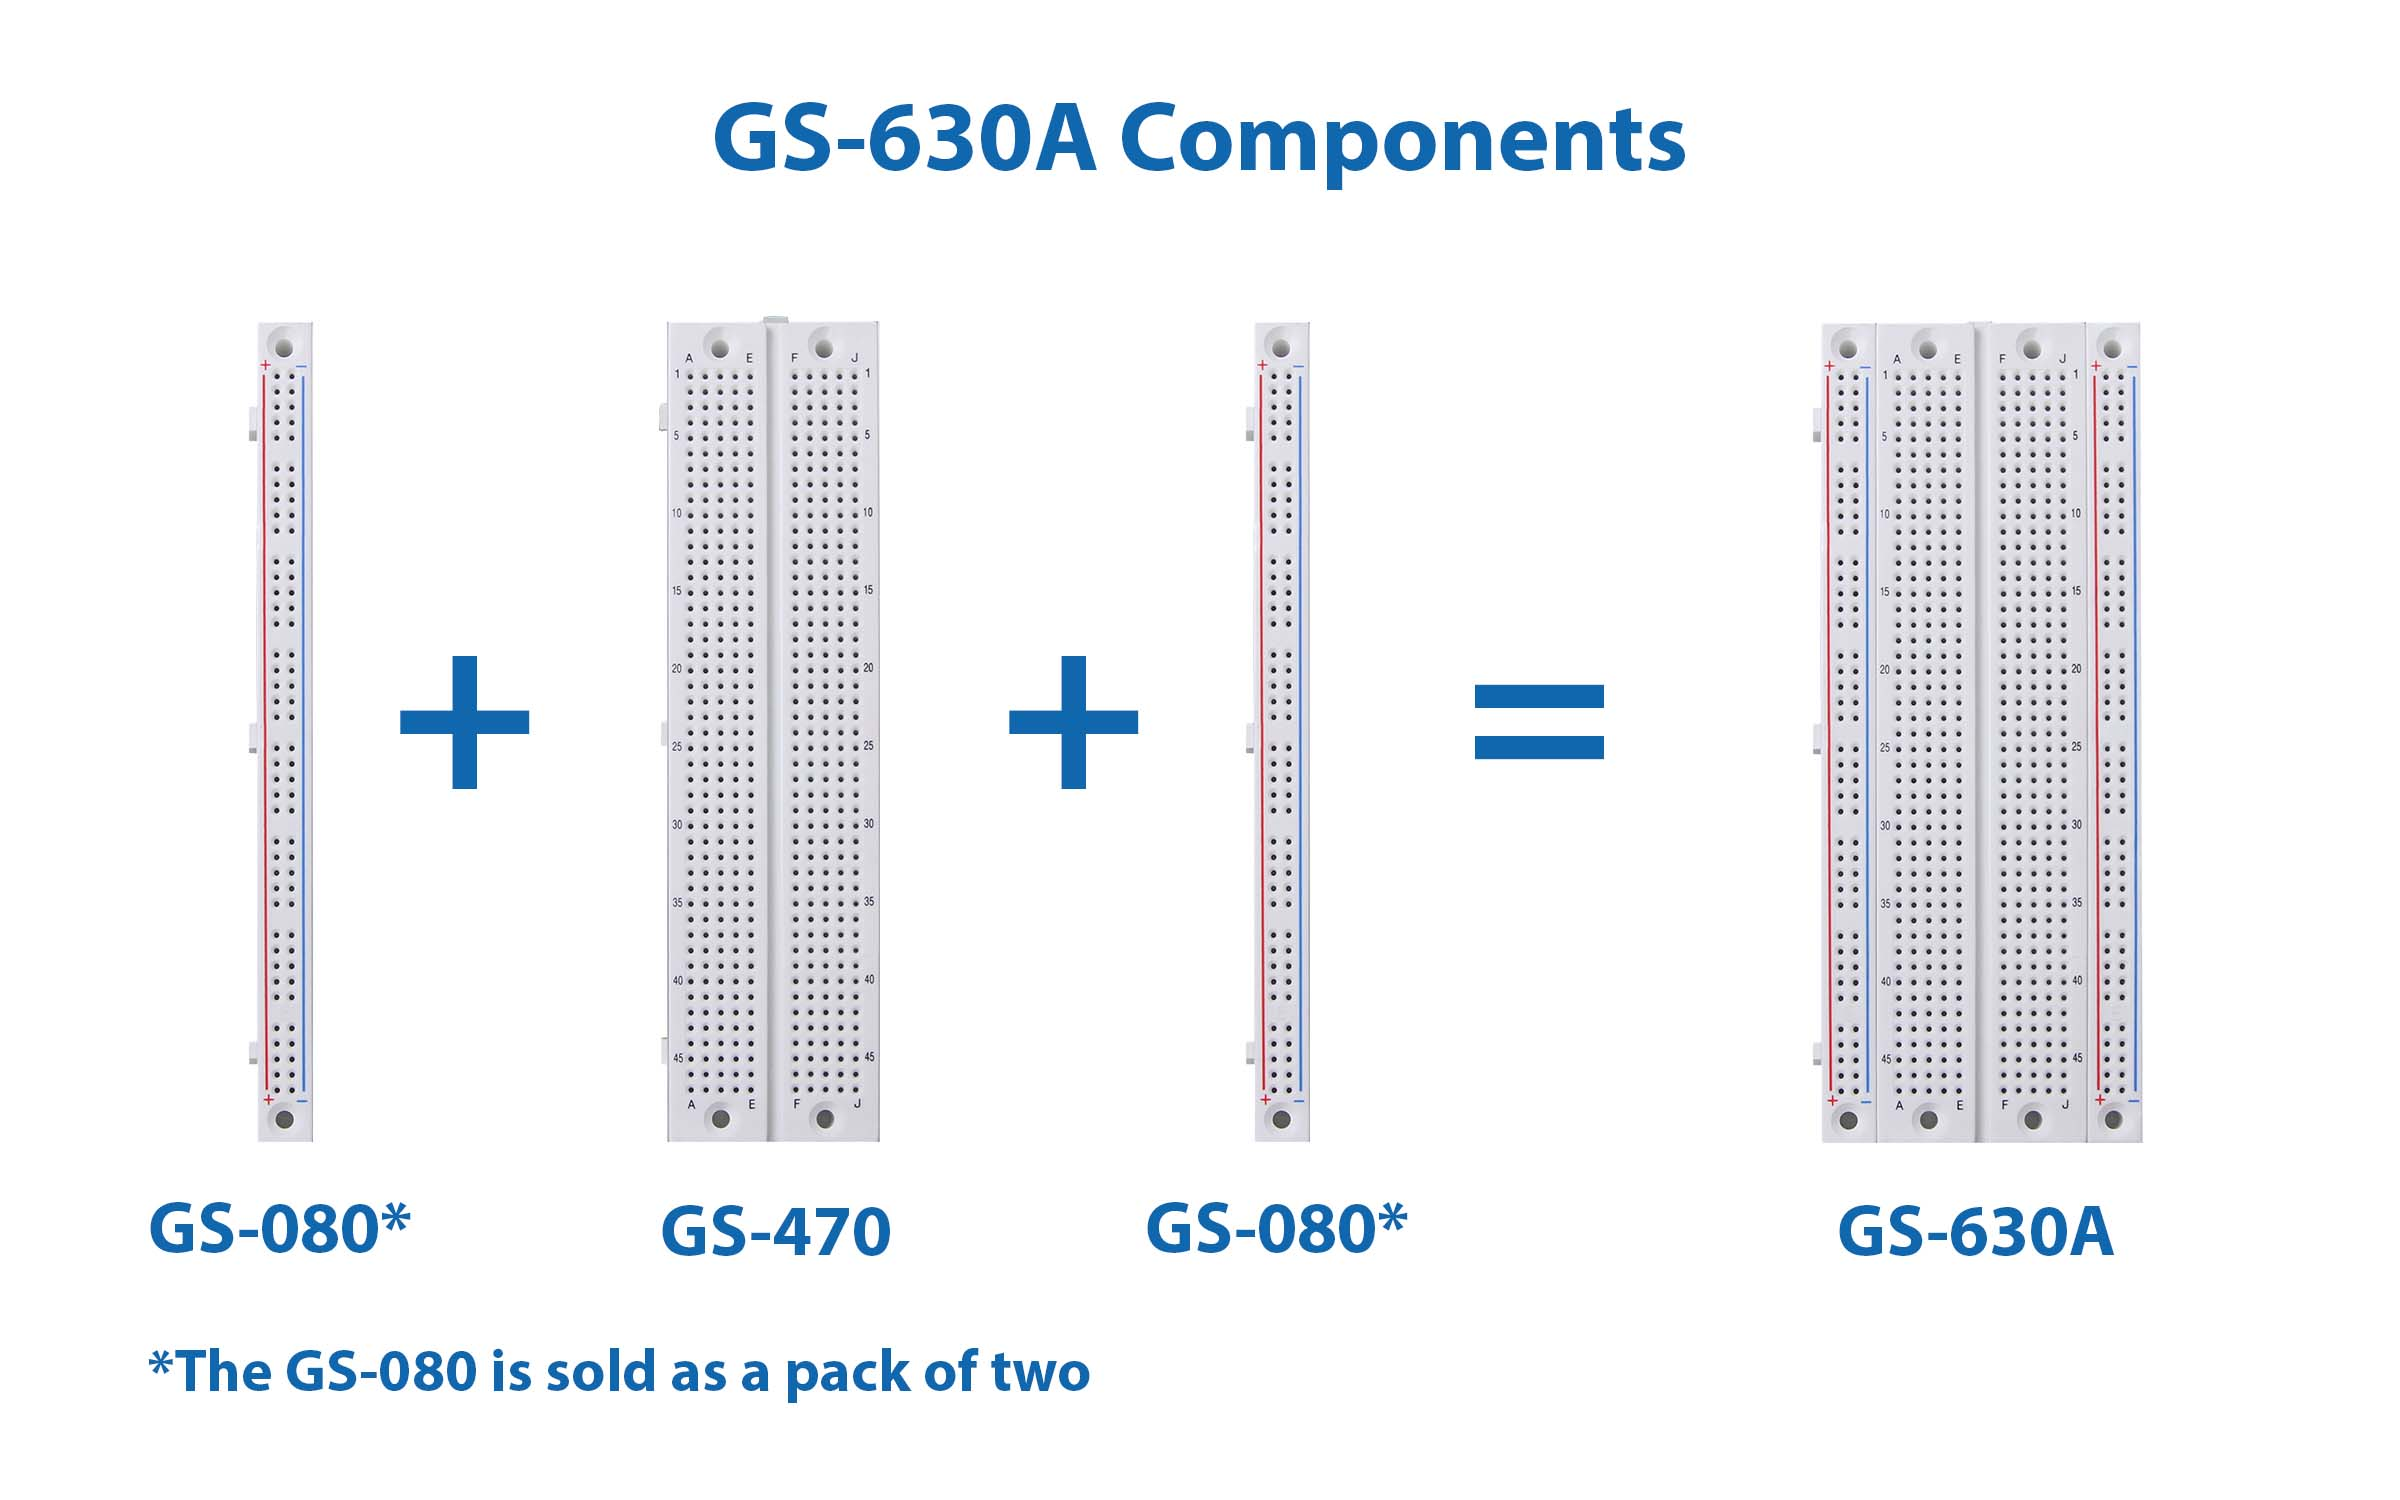 GS-630A Components Diagram